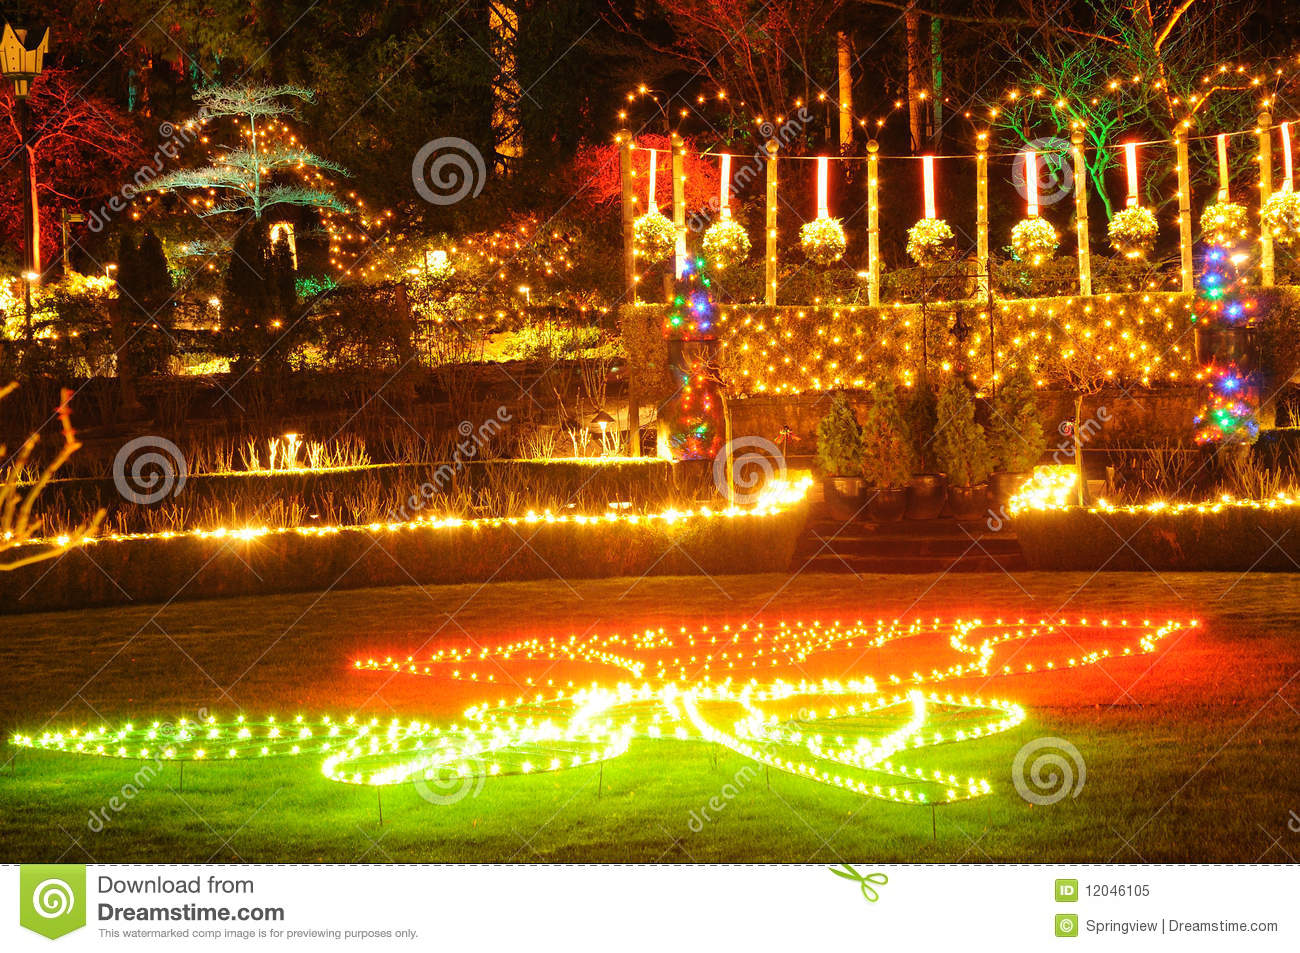 Christmas Lights In Butchart Gardens Stock Image - Image of british ...